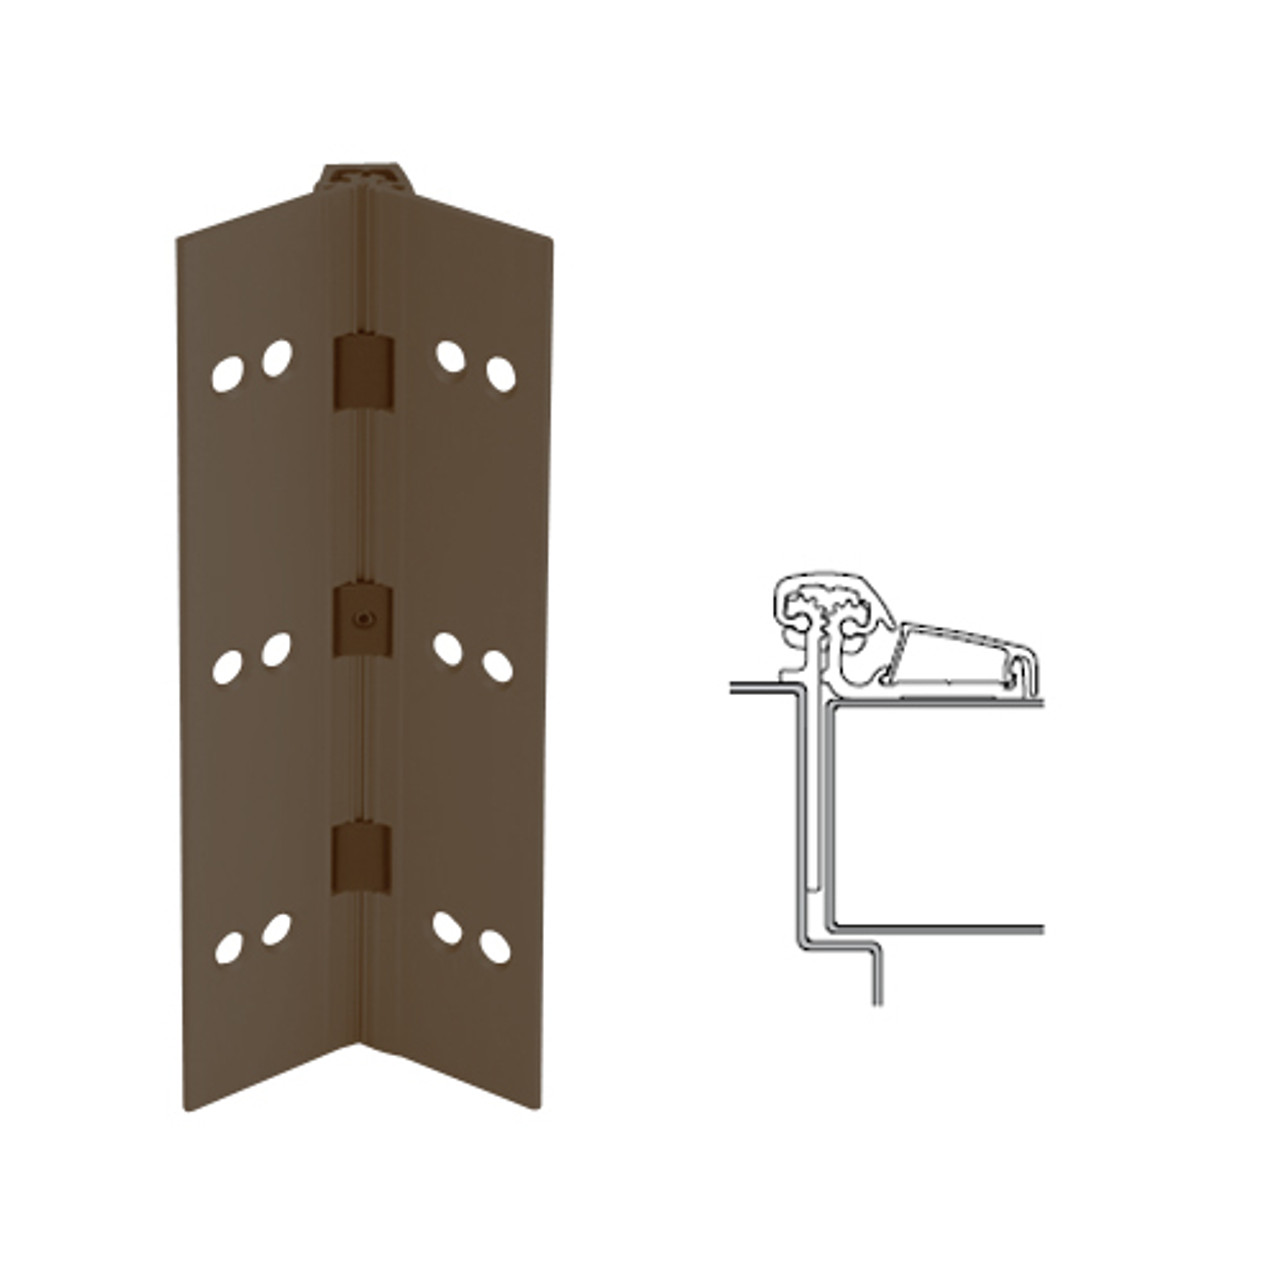 053XY-313AN-85-TEKWD IVES Adjustable Half Surface Continuous Geared Hinges with Wood Screws in Dark Bronze Anodized